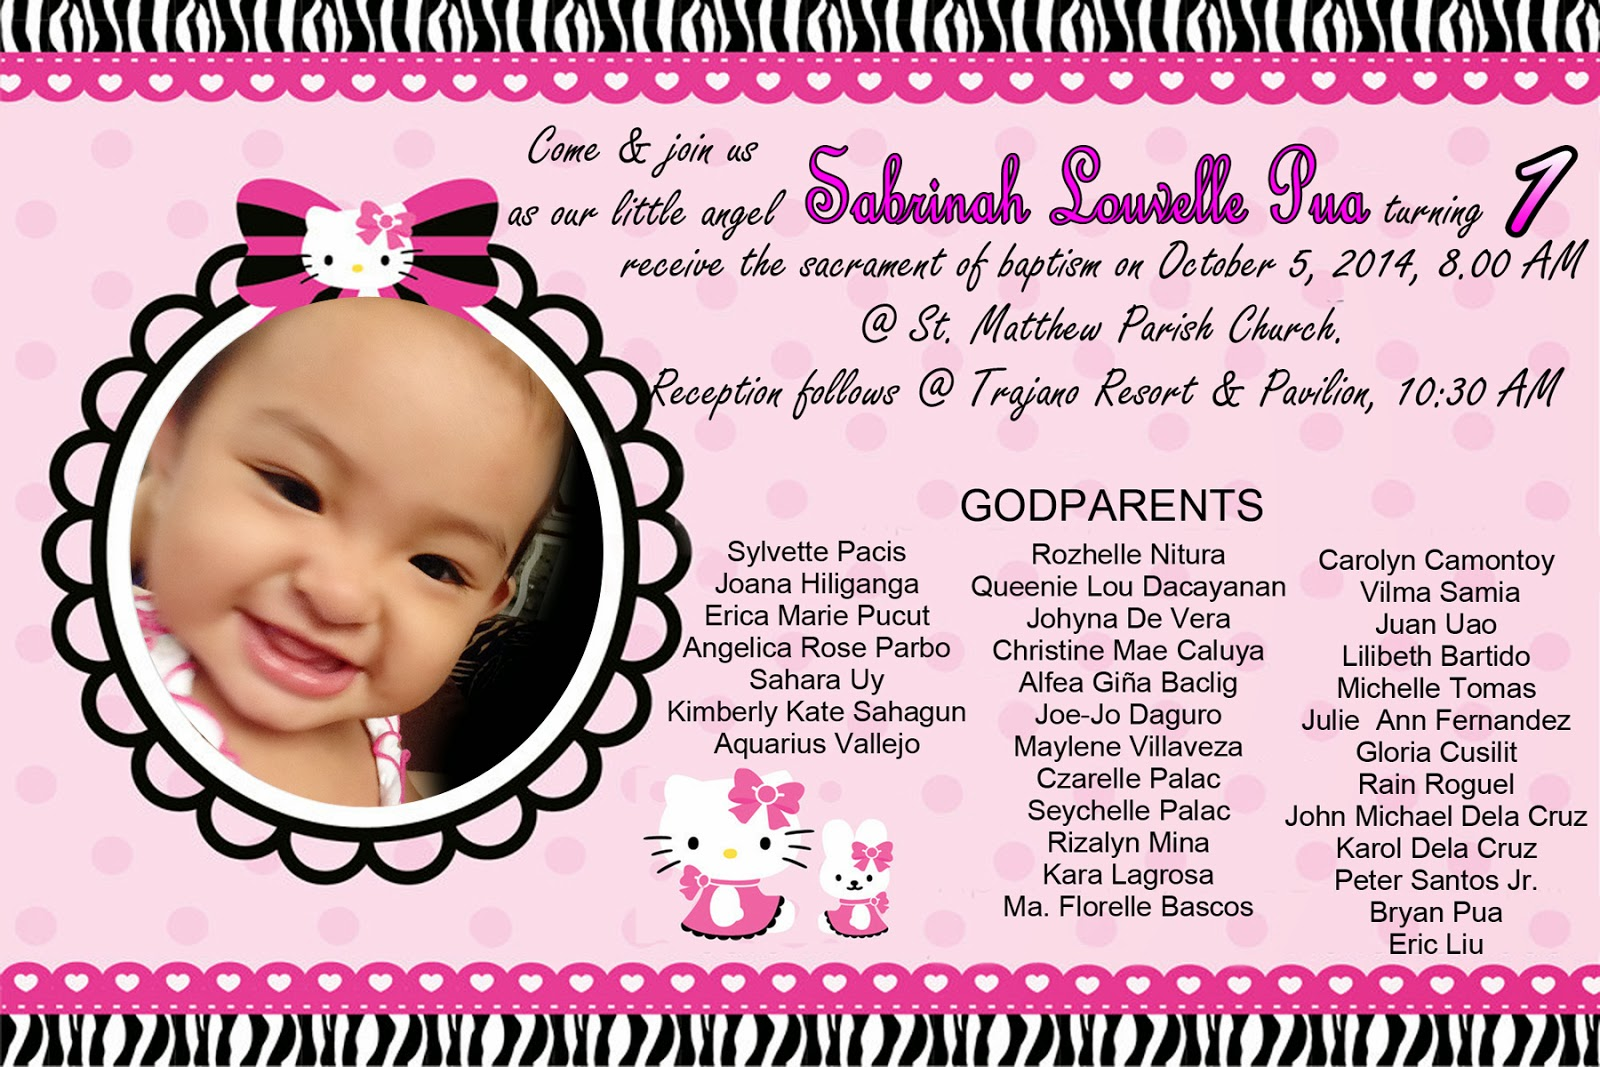 hello kitty invitation for christening and 1st birthday randy hello kitty invitation for christening and 1st birthday